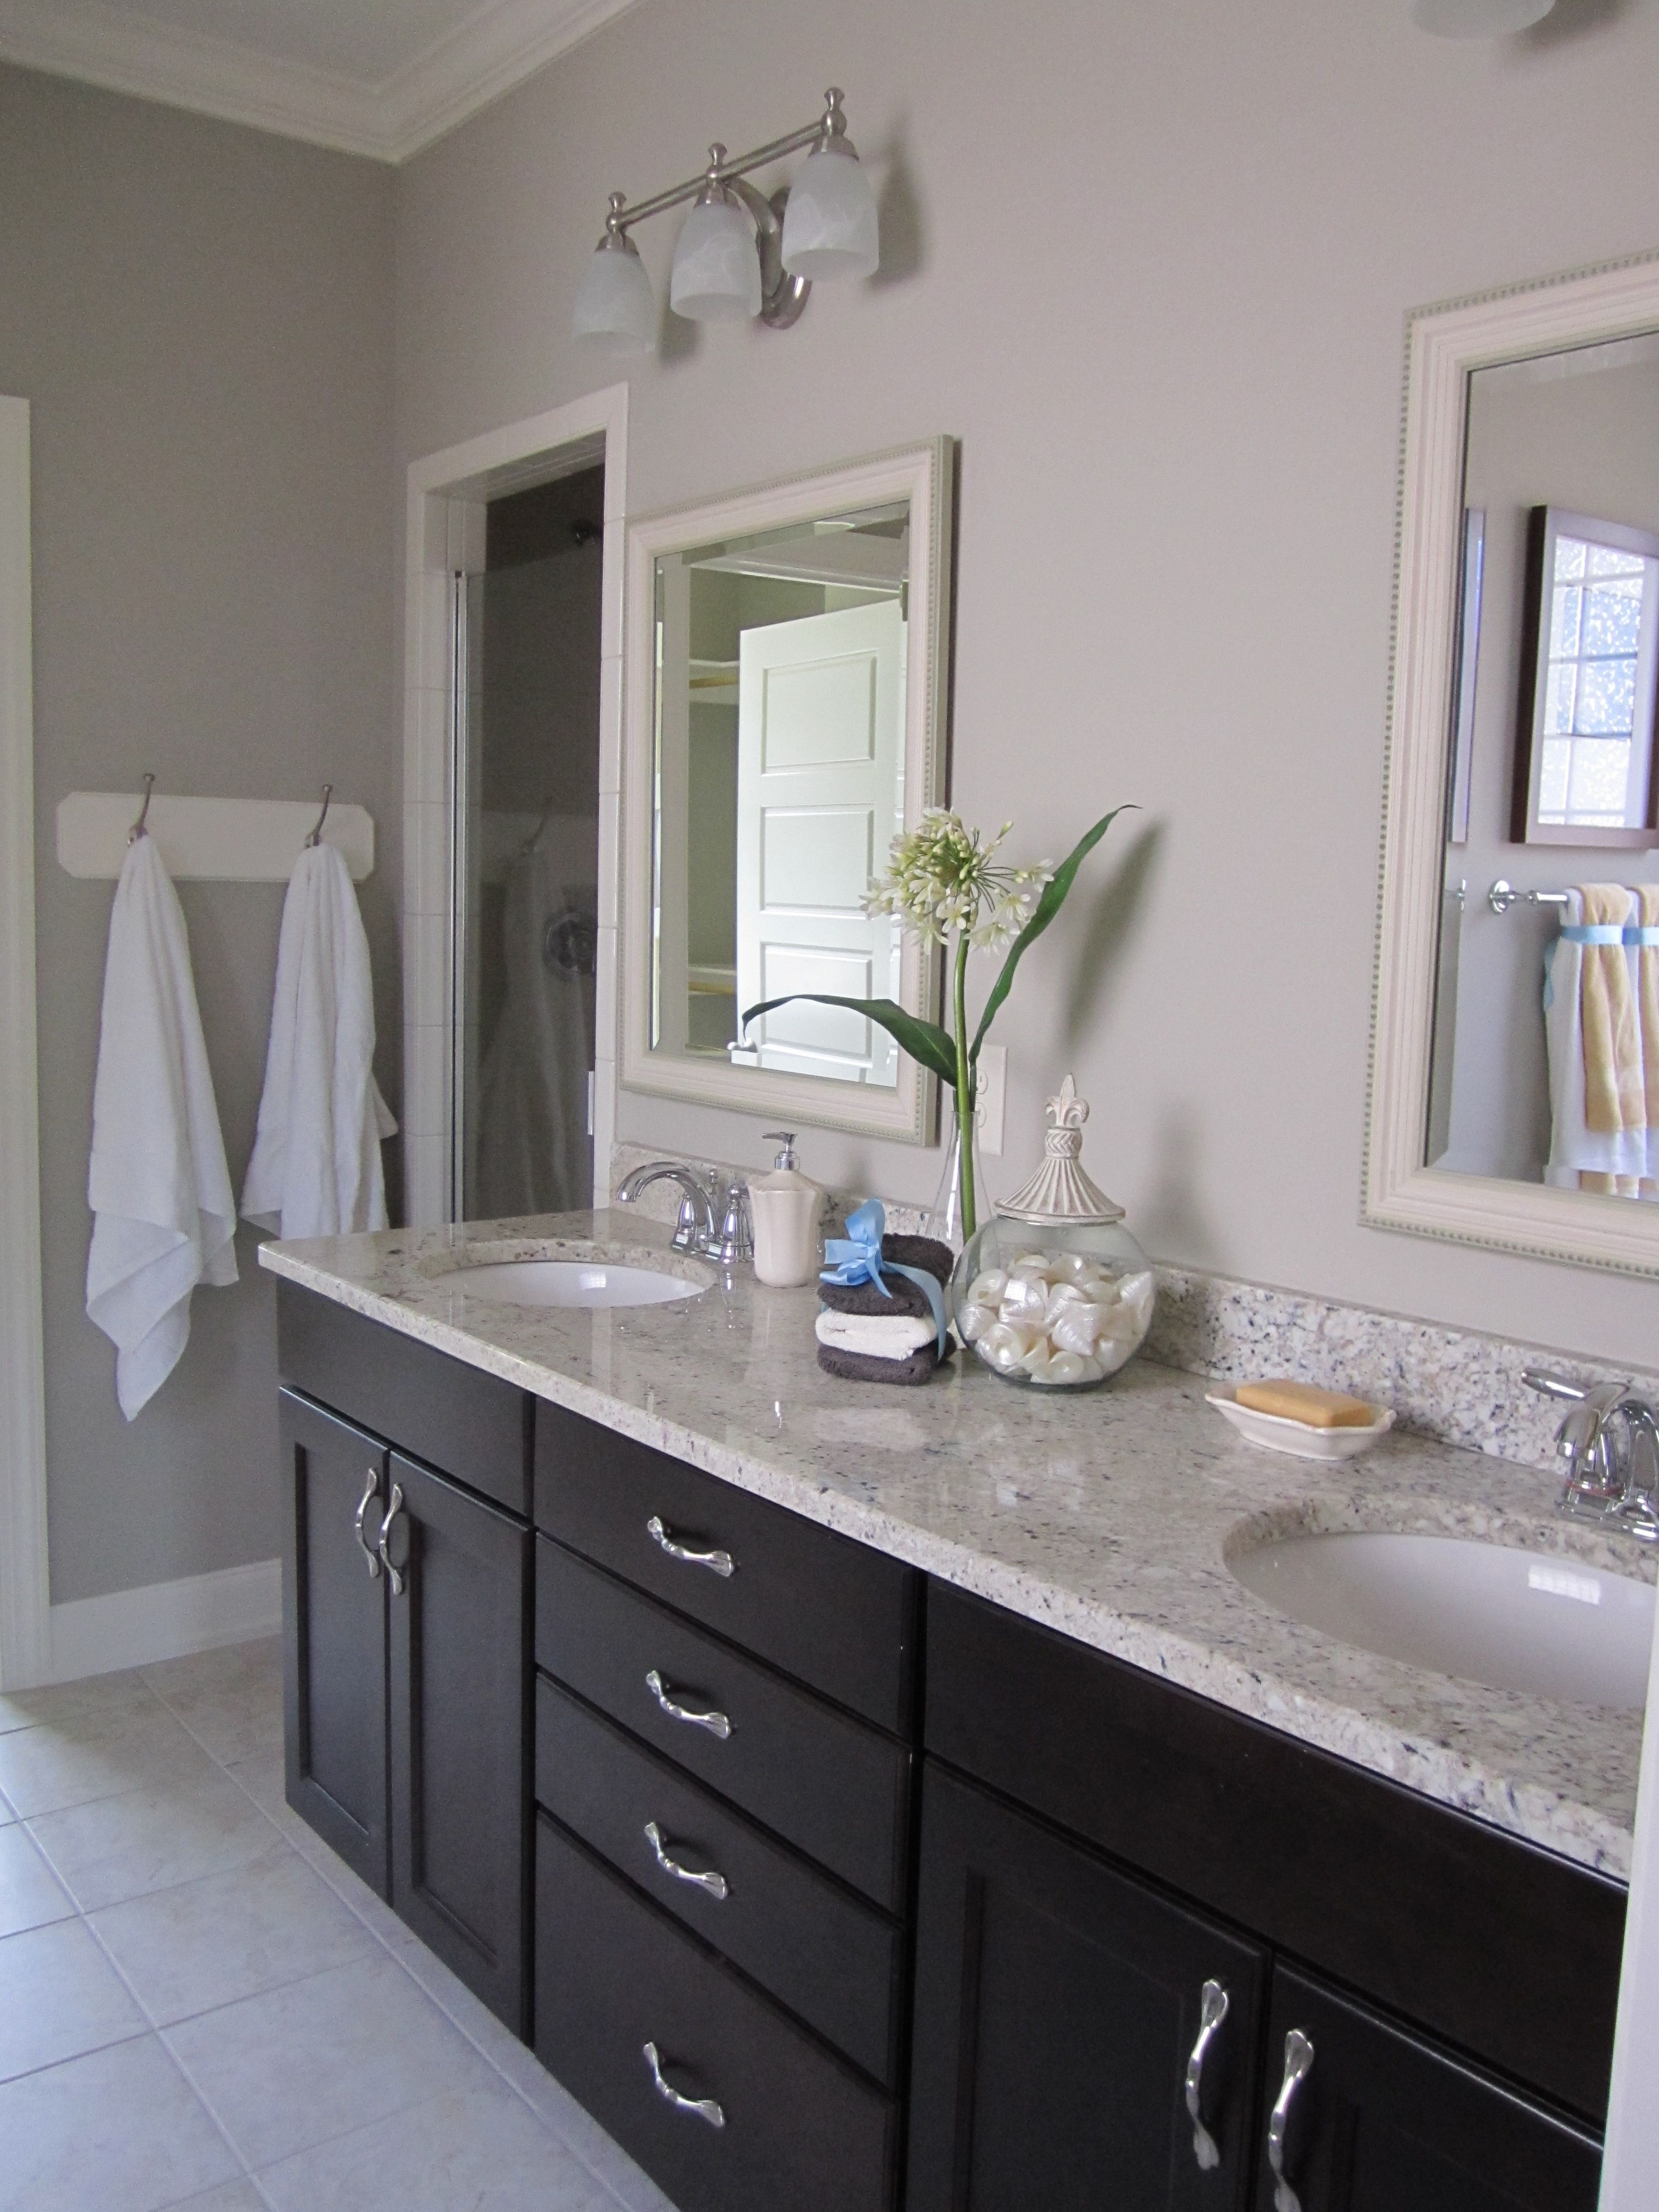 Wall Cabinets For Bathrooms Dark Cabinets Light Countertop White Door Frame And Kickboards